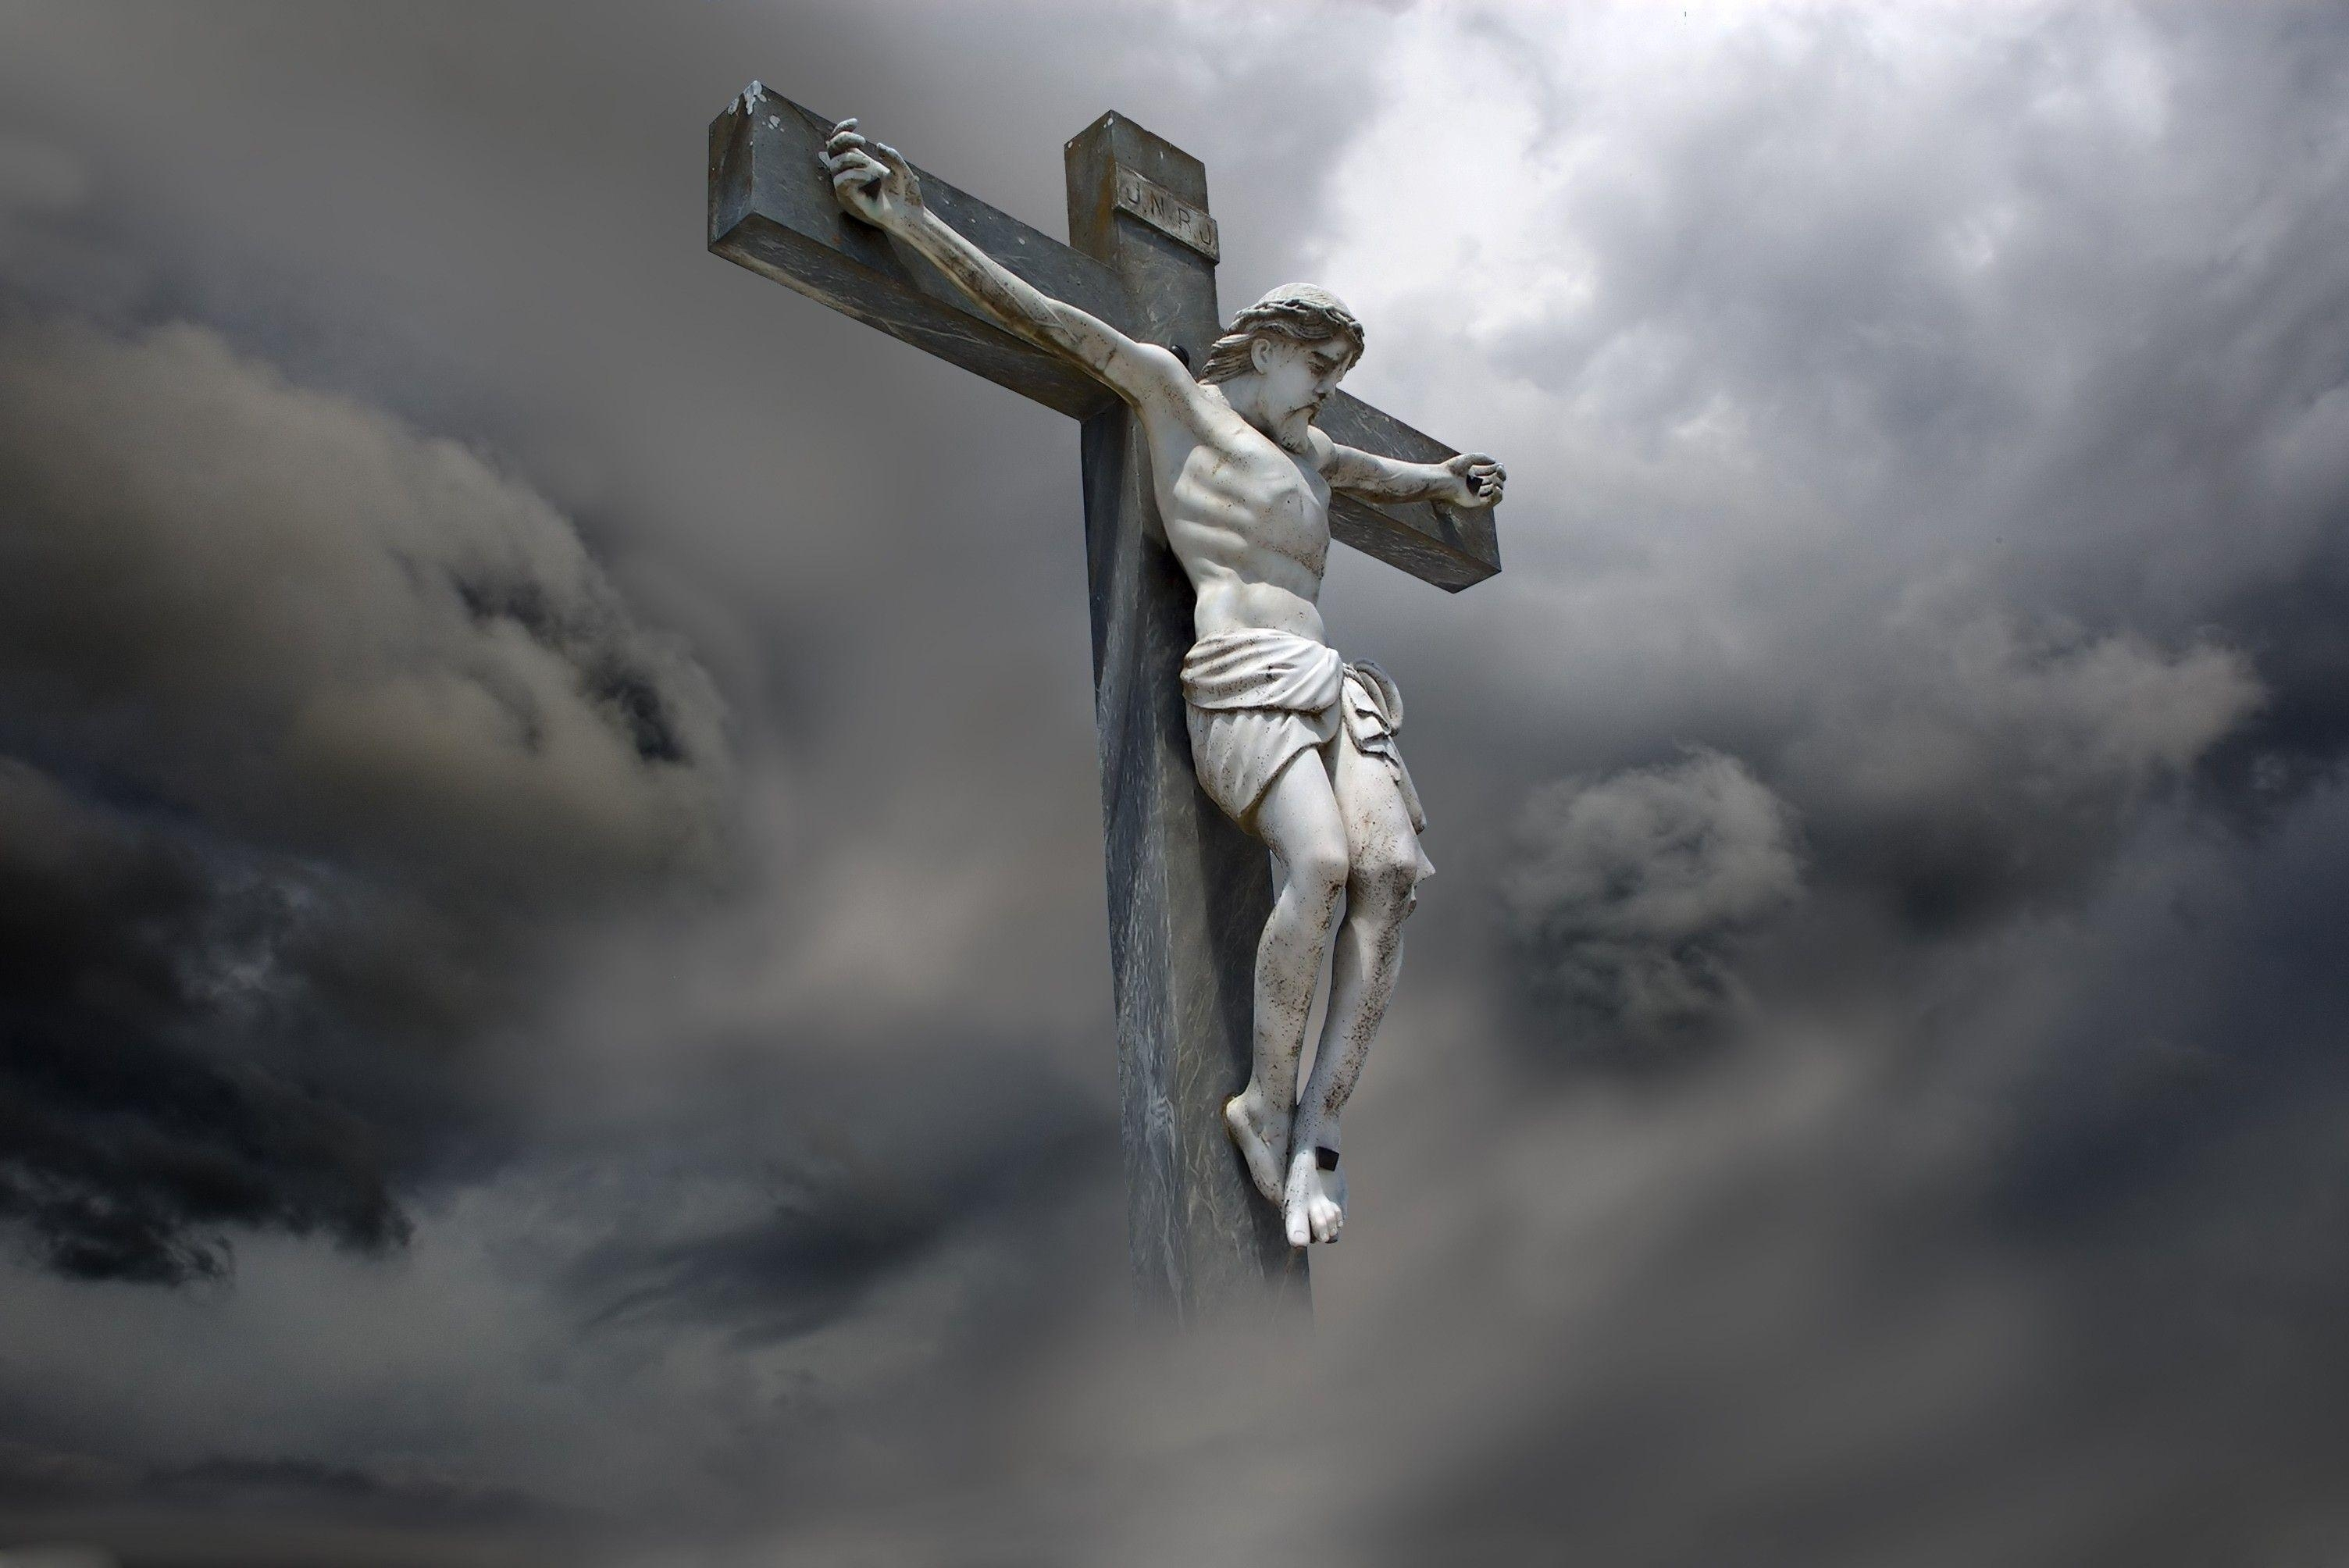 Title : jesus christ on the cross wallpapers – wallpaper cave. Dimension : 3008 x 2008. File Type : JPG/JPEG